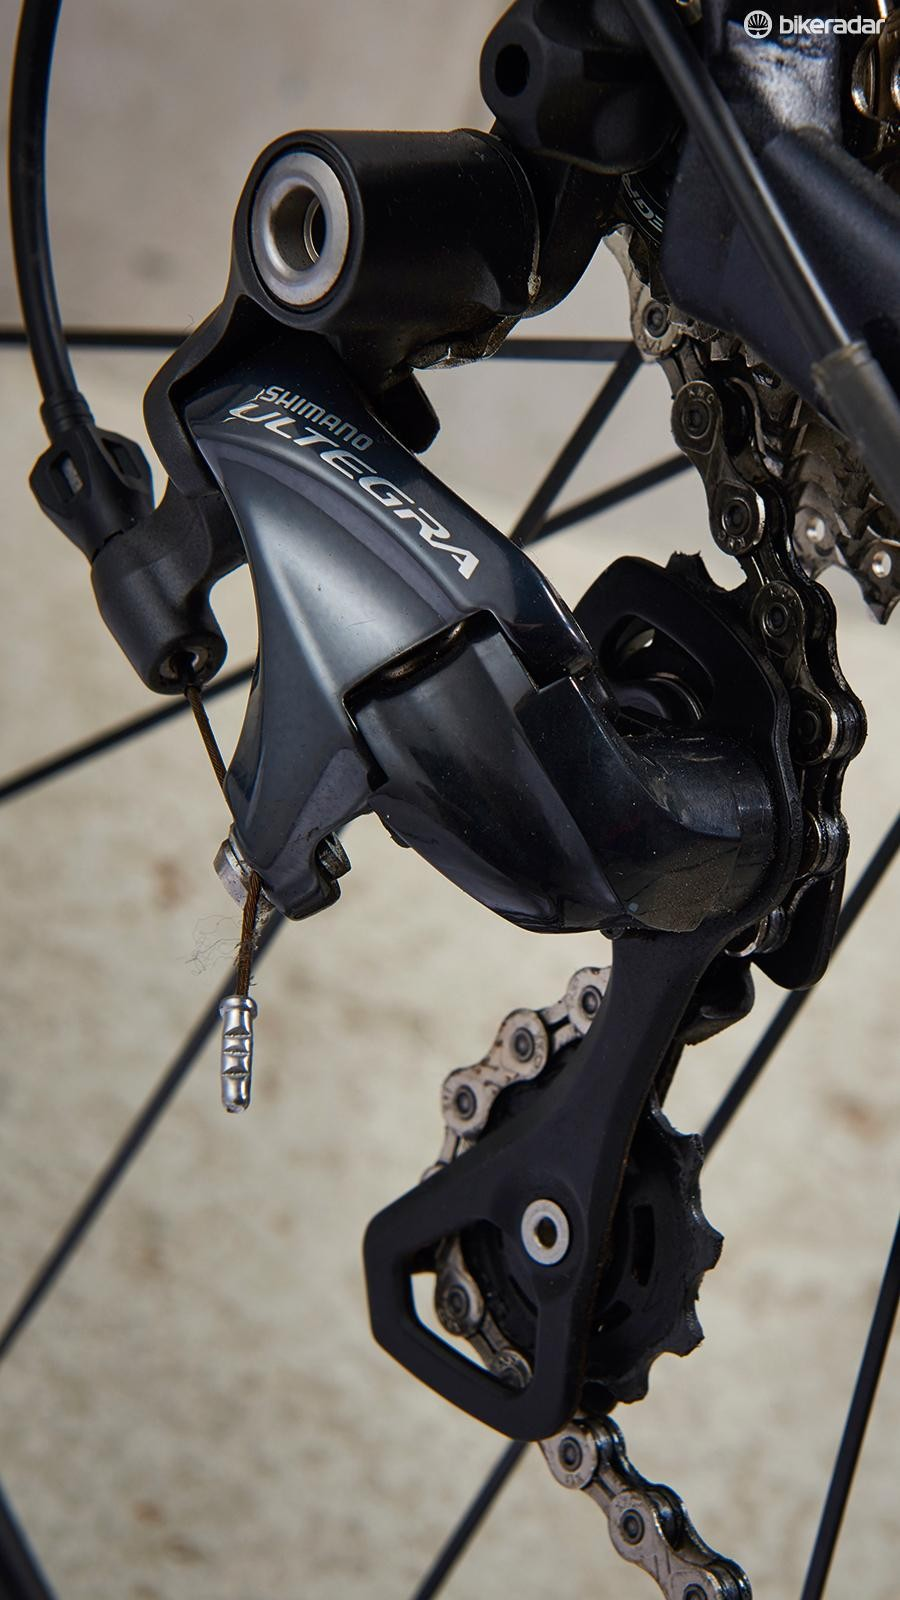 Full Ultegra – minus chain – is great to see at this price